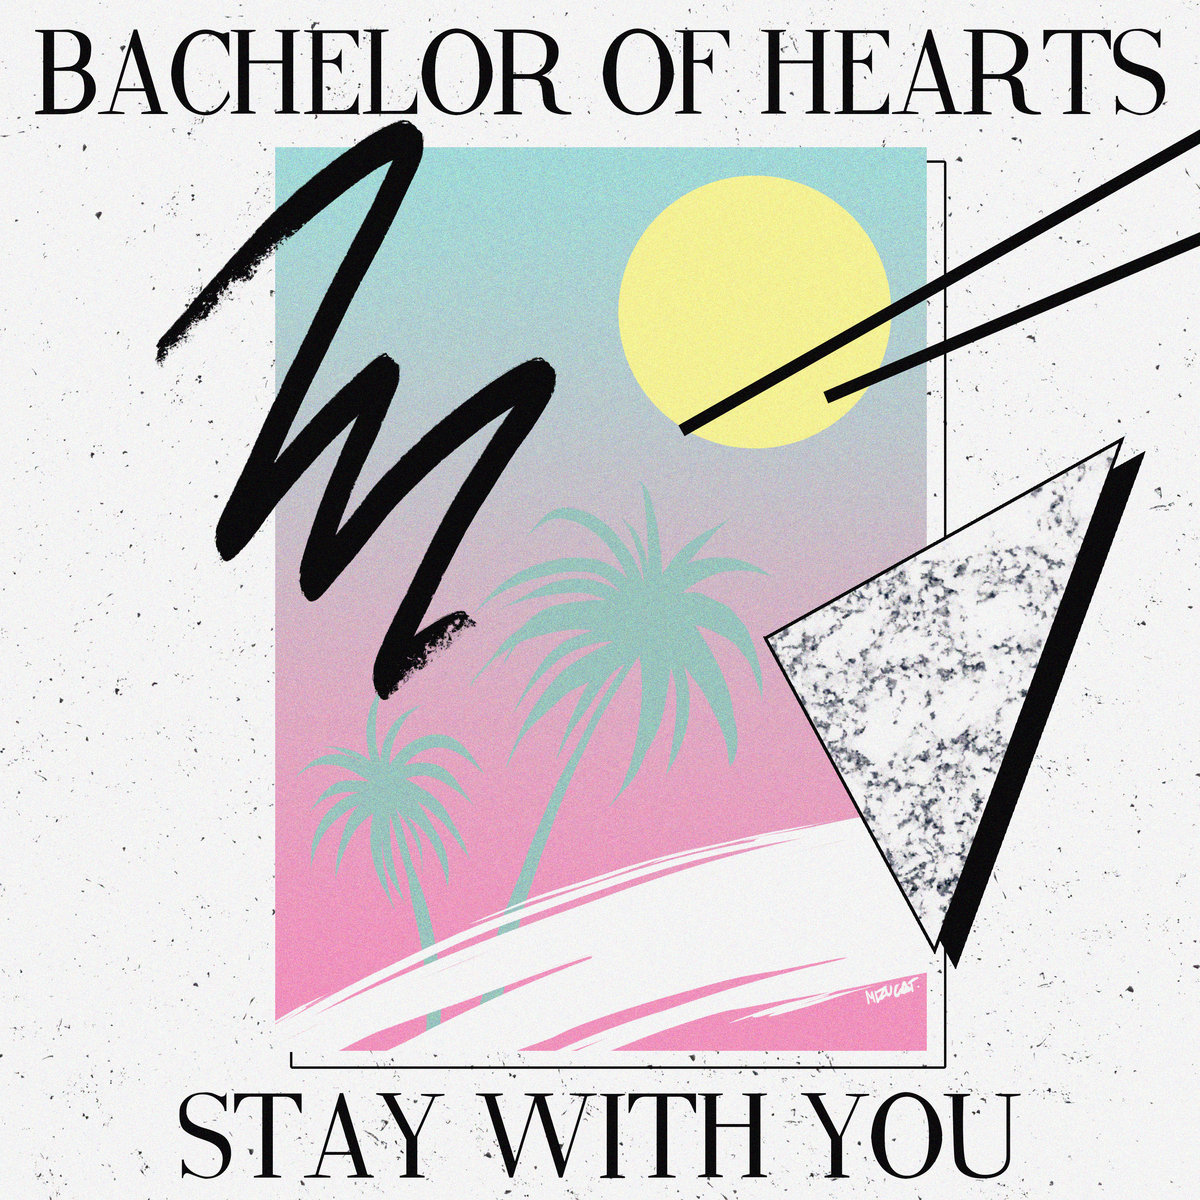 a3912162455 10 - Bachelor of Hearts - Stay With You